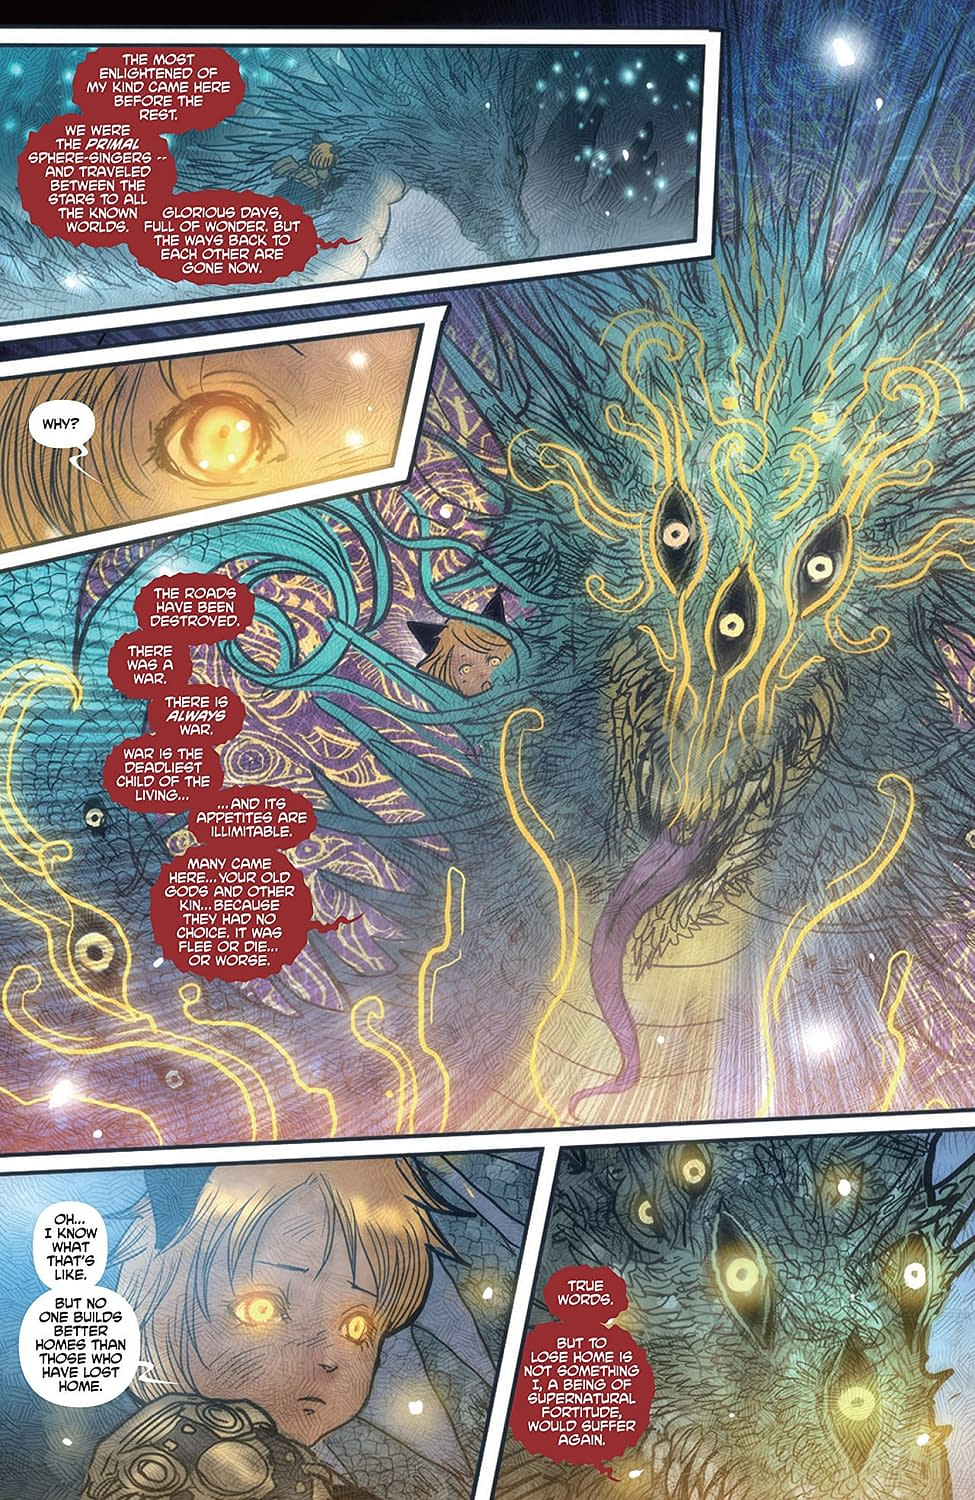 'Monstress' #22: Kippa Makes a Big New (Scary) Friend!